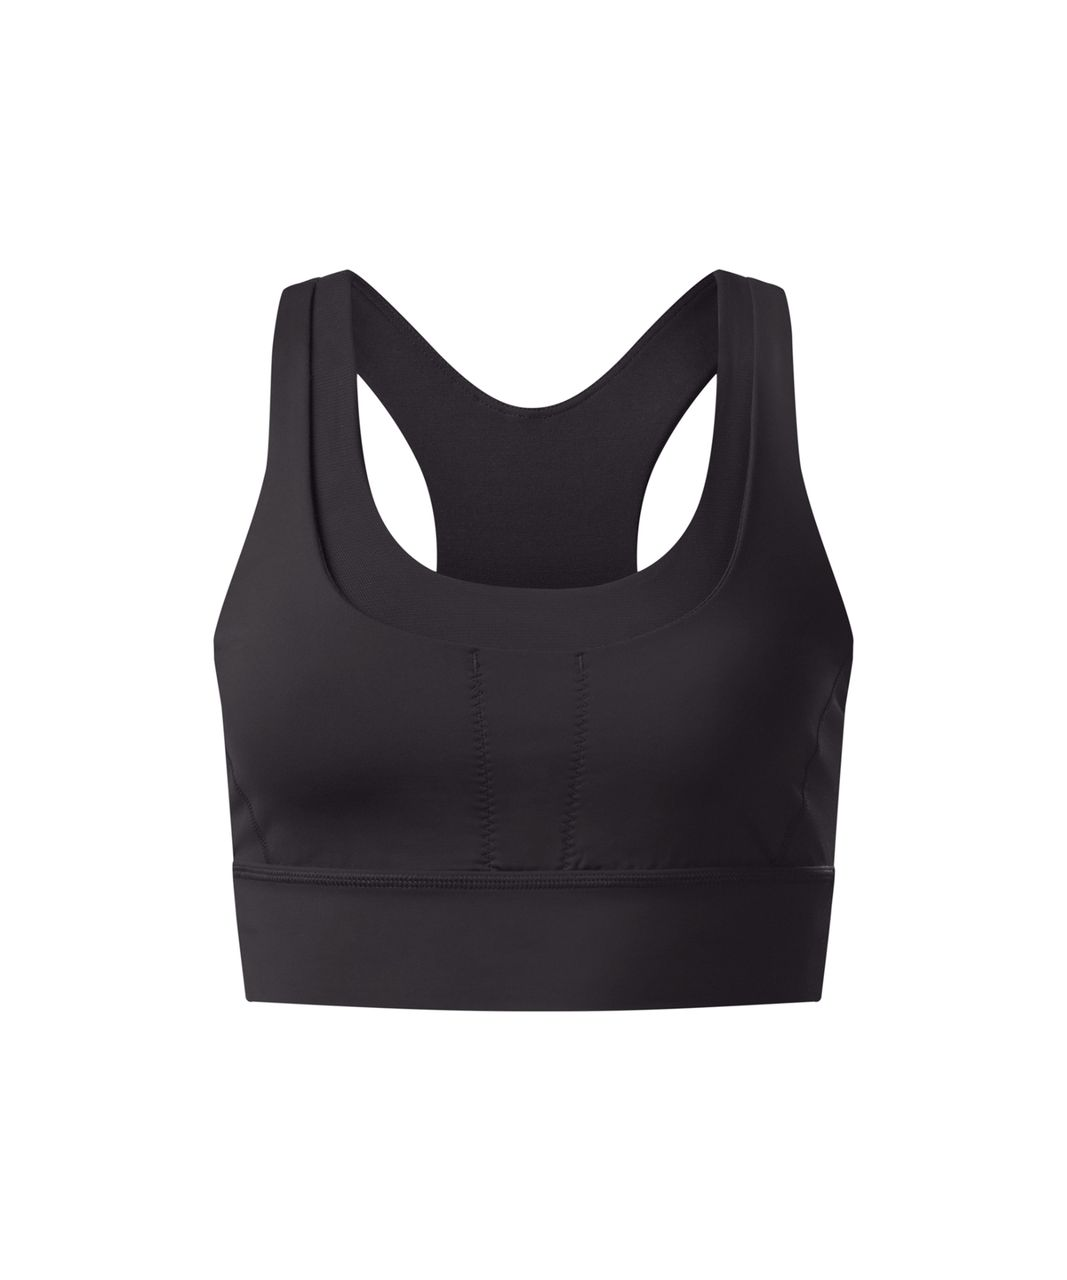 39222ce941 Buy cheap long sports bra top  Up to OFF69% Discounts